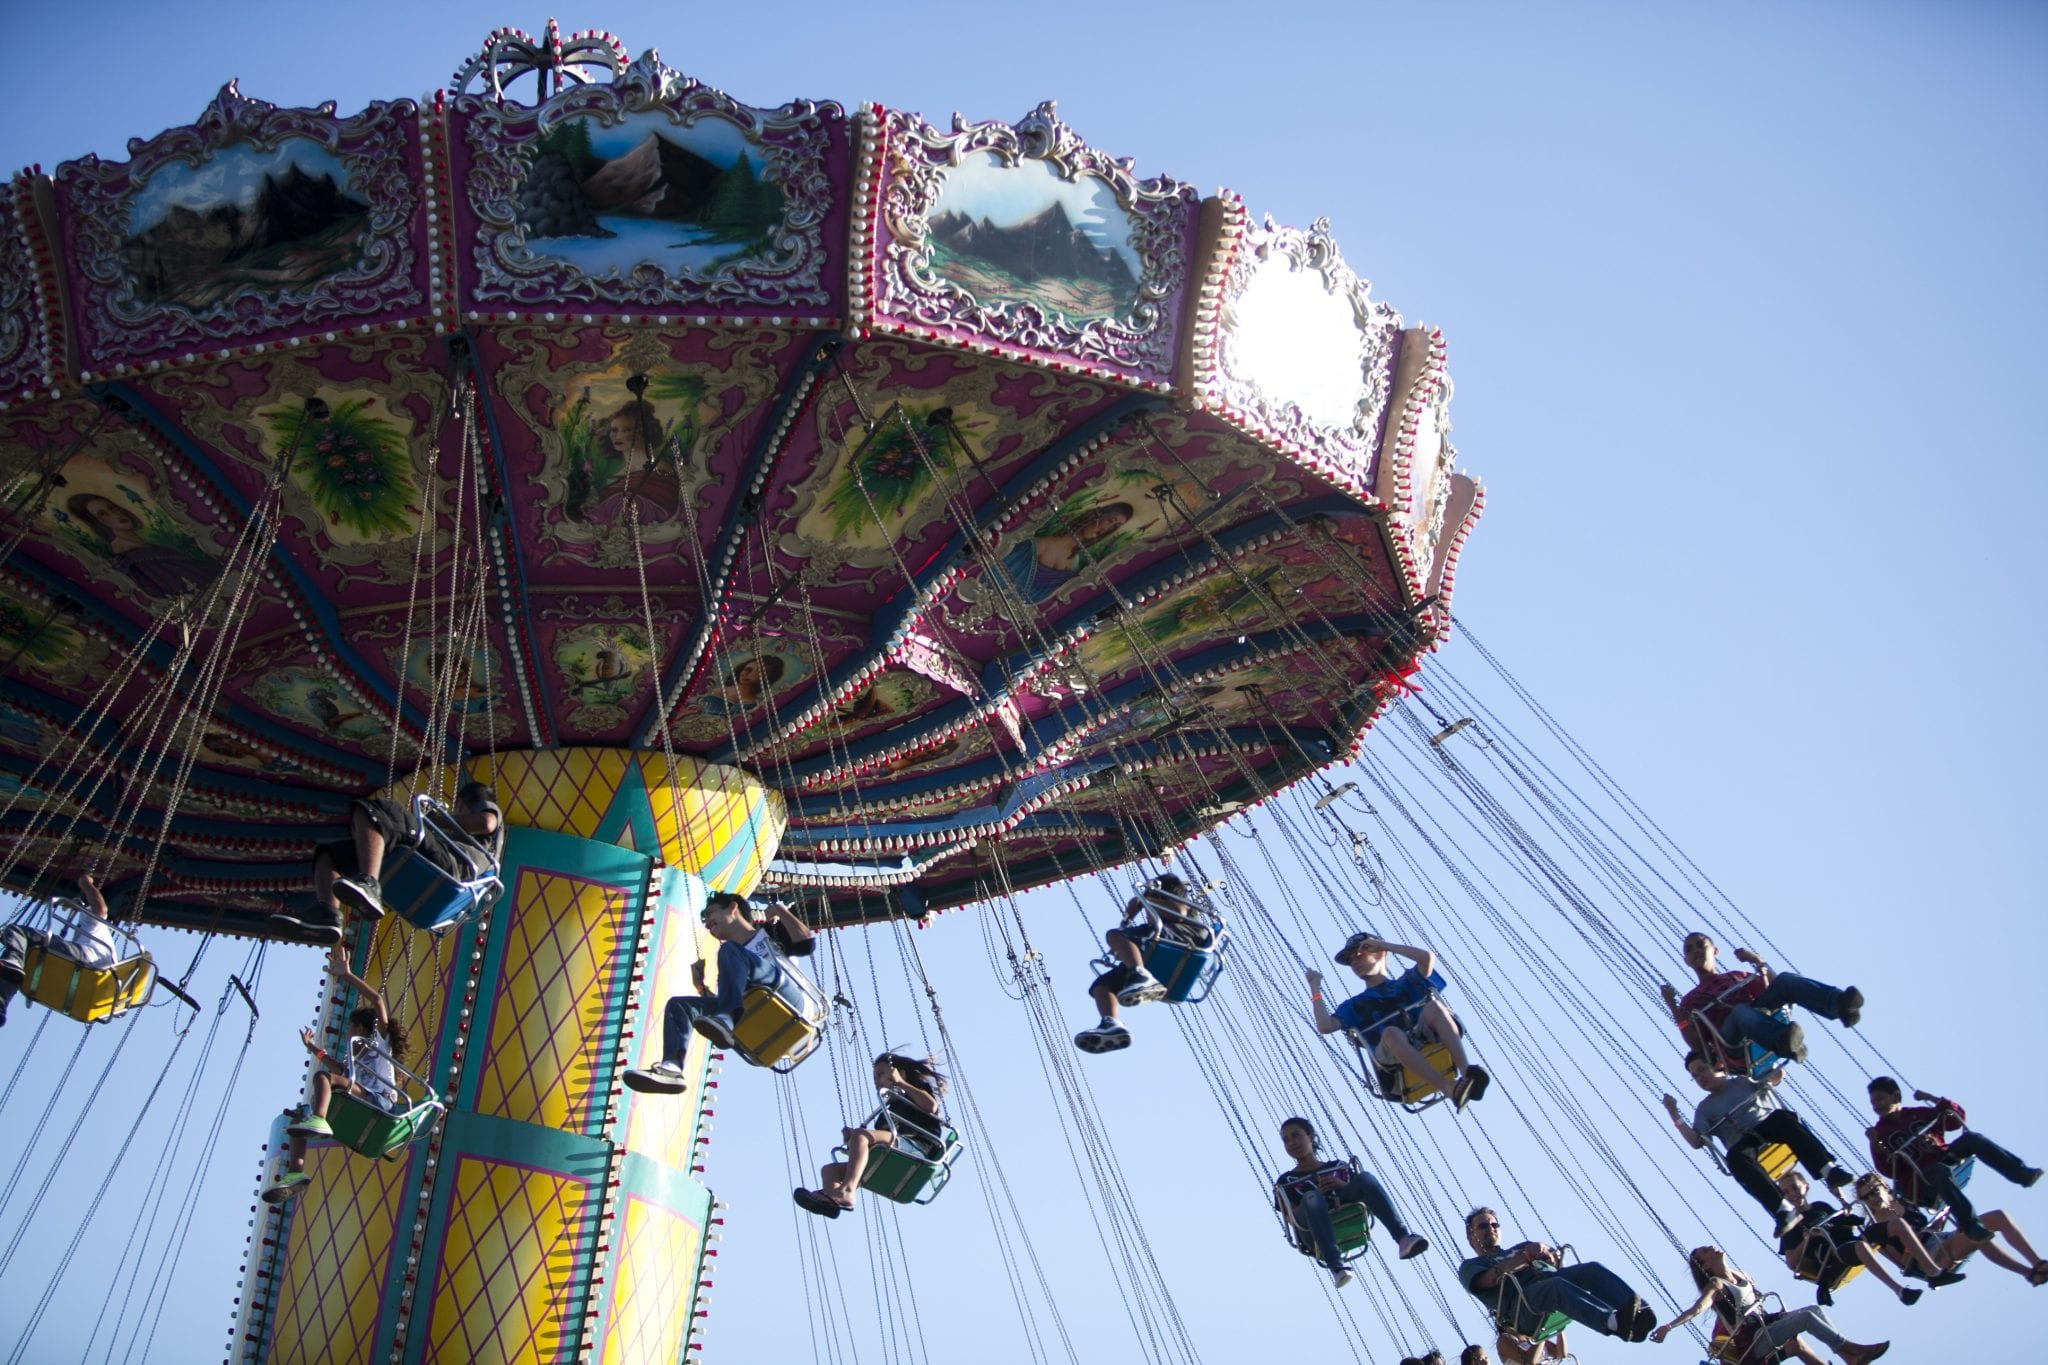 Photo of fair visitors on a large swing ride at the Alameda County Fair in Pleasanton, CA.